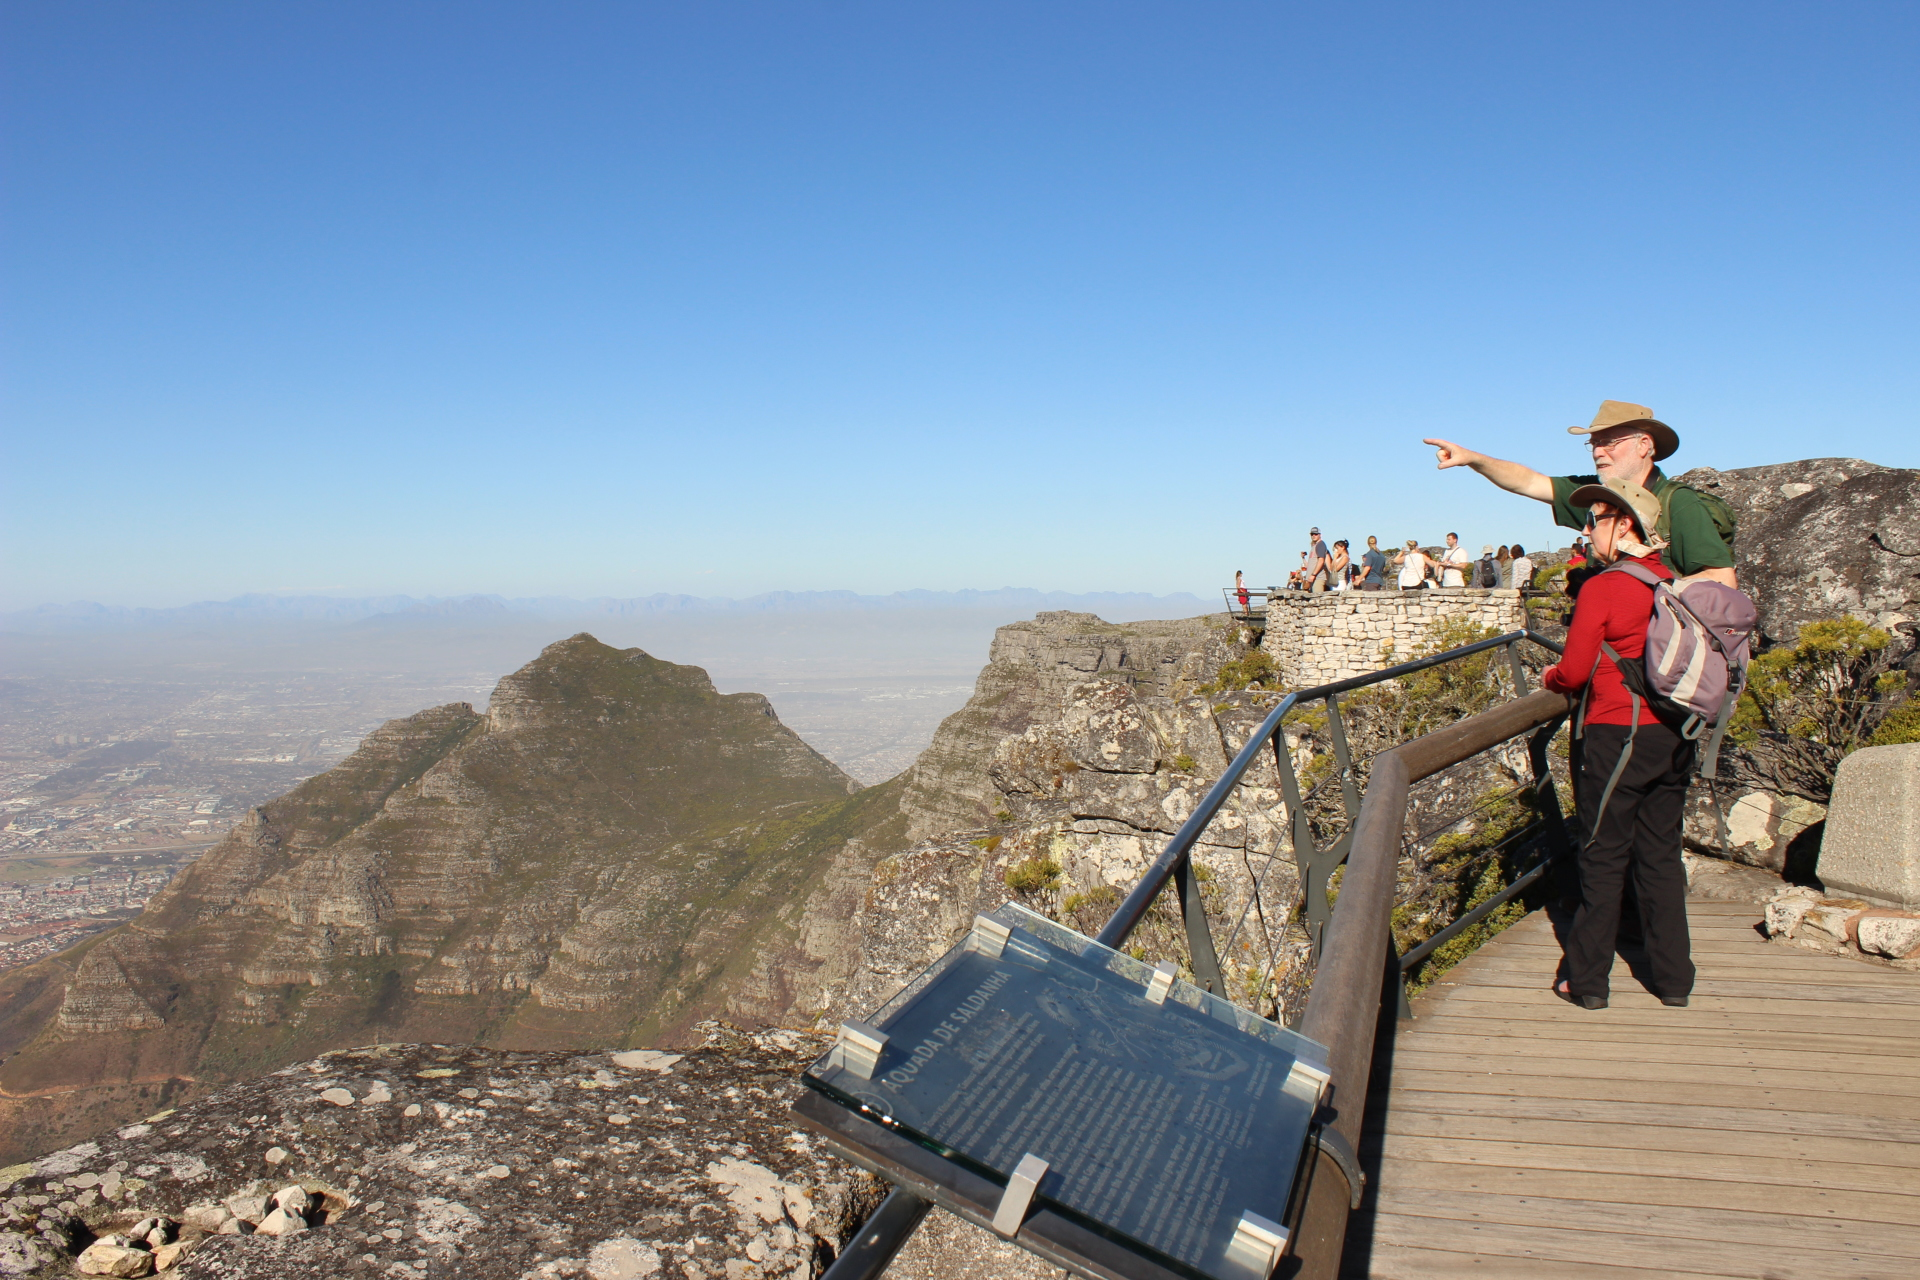 2018 South Africa Trip, Part 8: Table Mountain